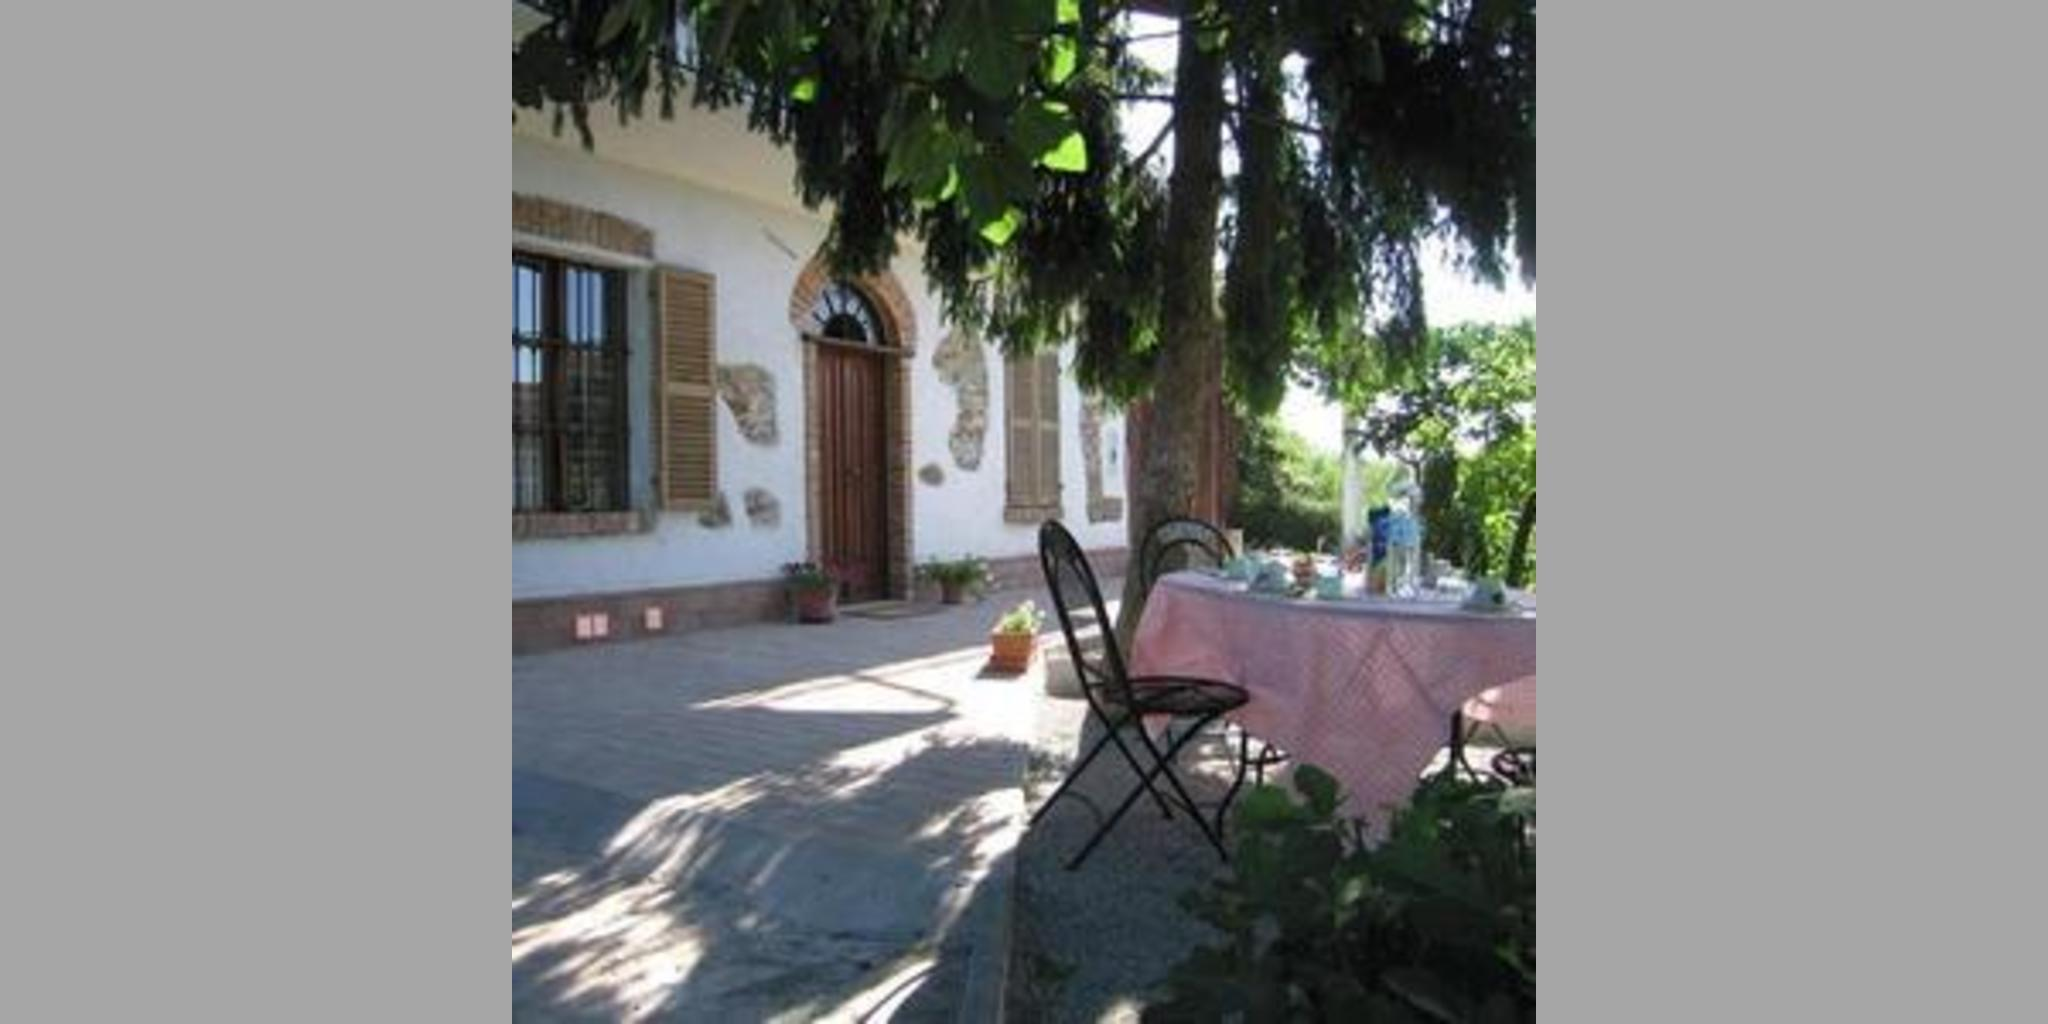 Bed & Breakfast Brusasco - Giulio Romano